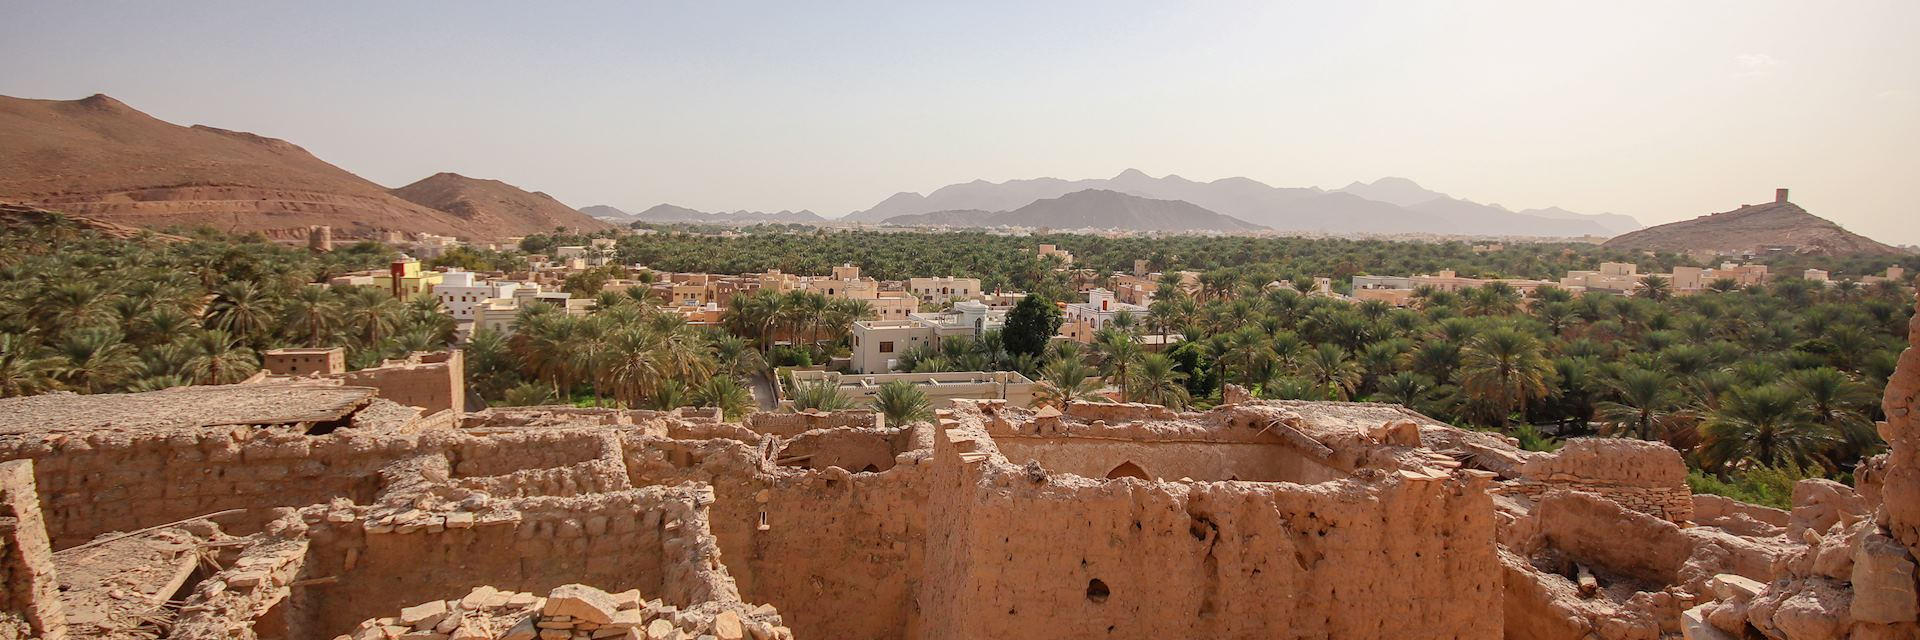 Abandoned village, Nizwa